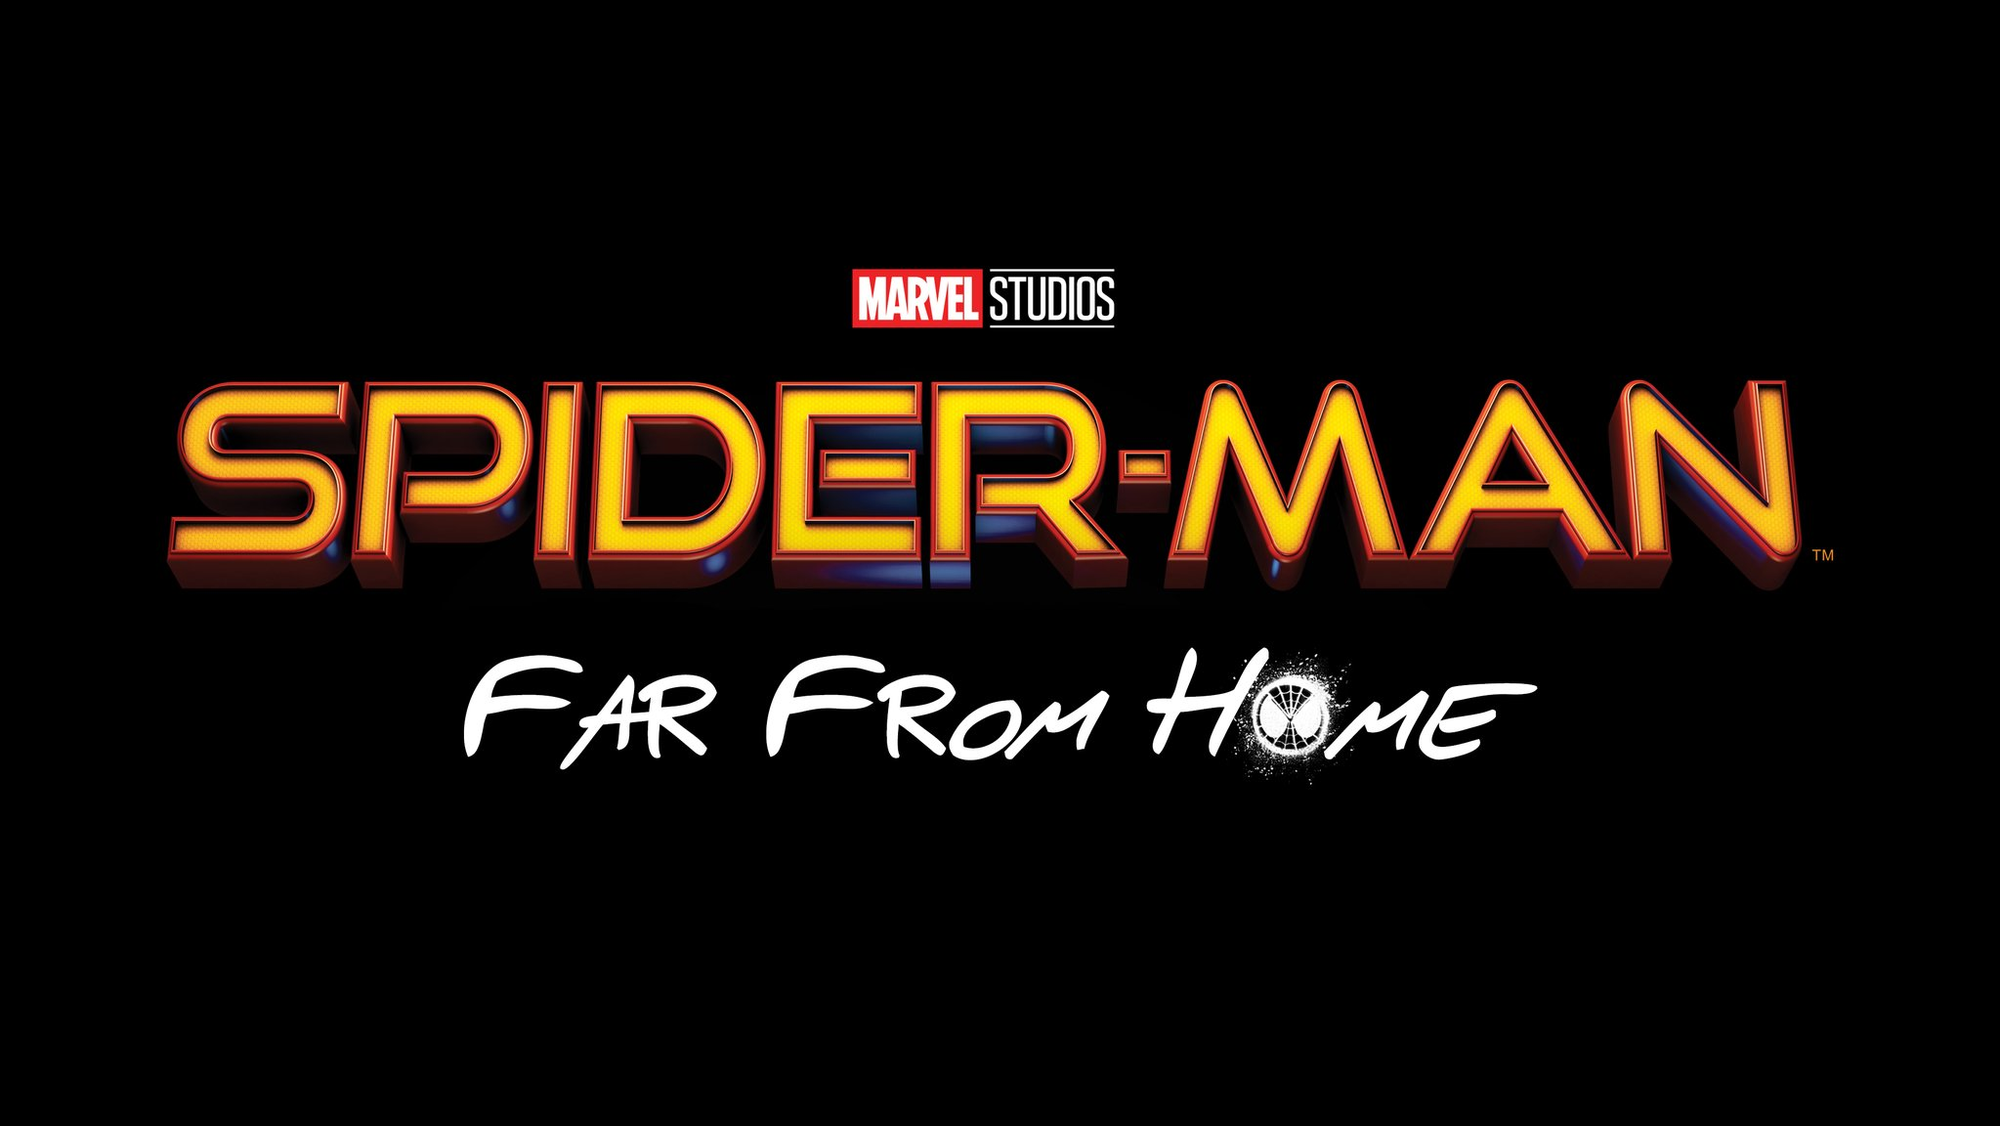 Spider-Man_-_Far_From_Home_logo.png